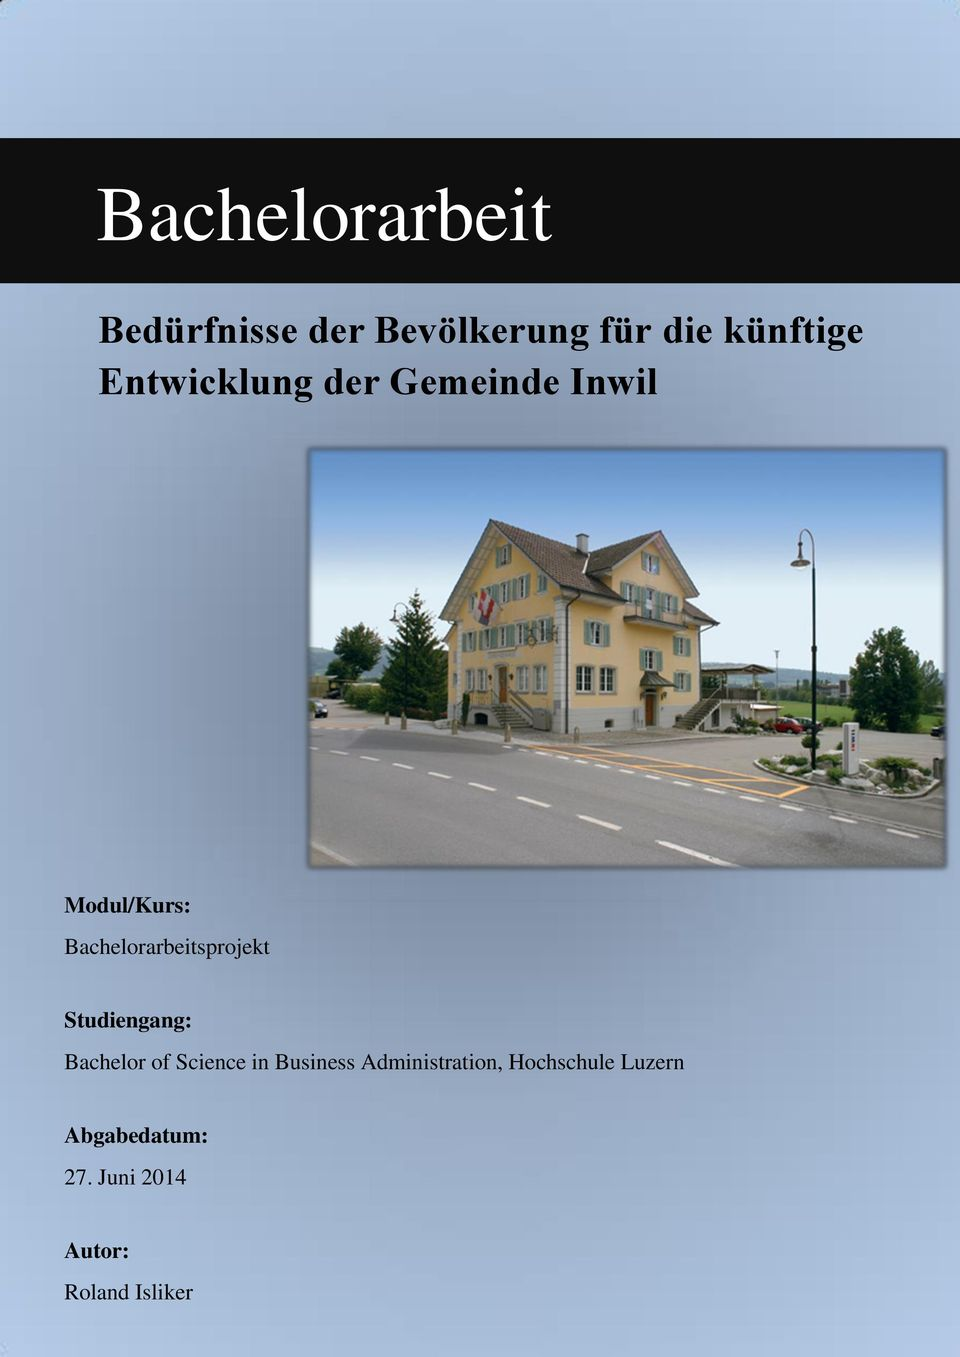 Bachelorarbeitsprojekt Studiengang: Bachelor of Science in